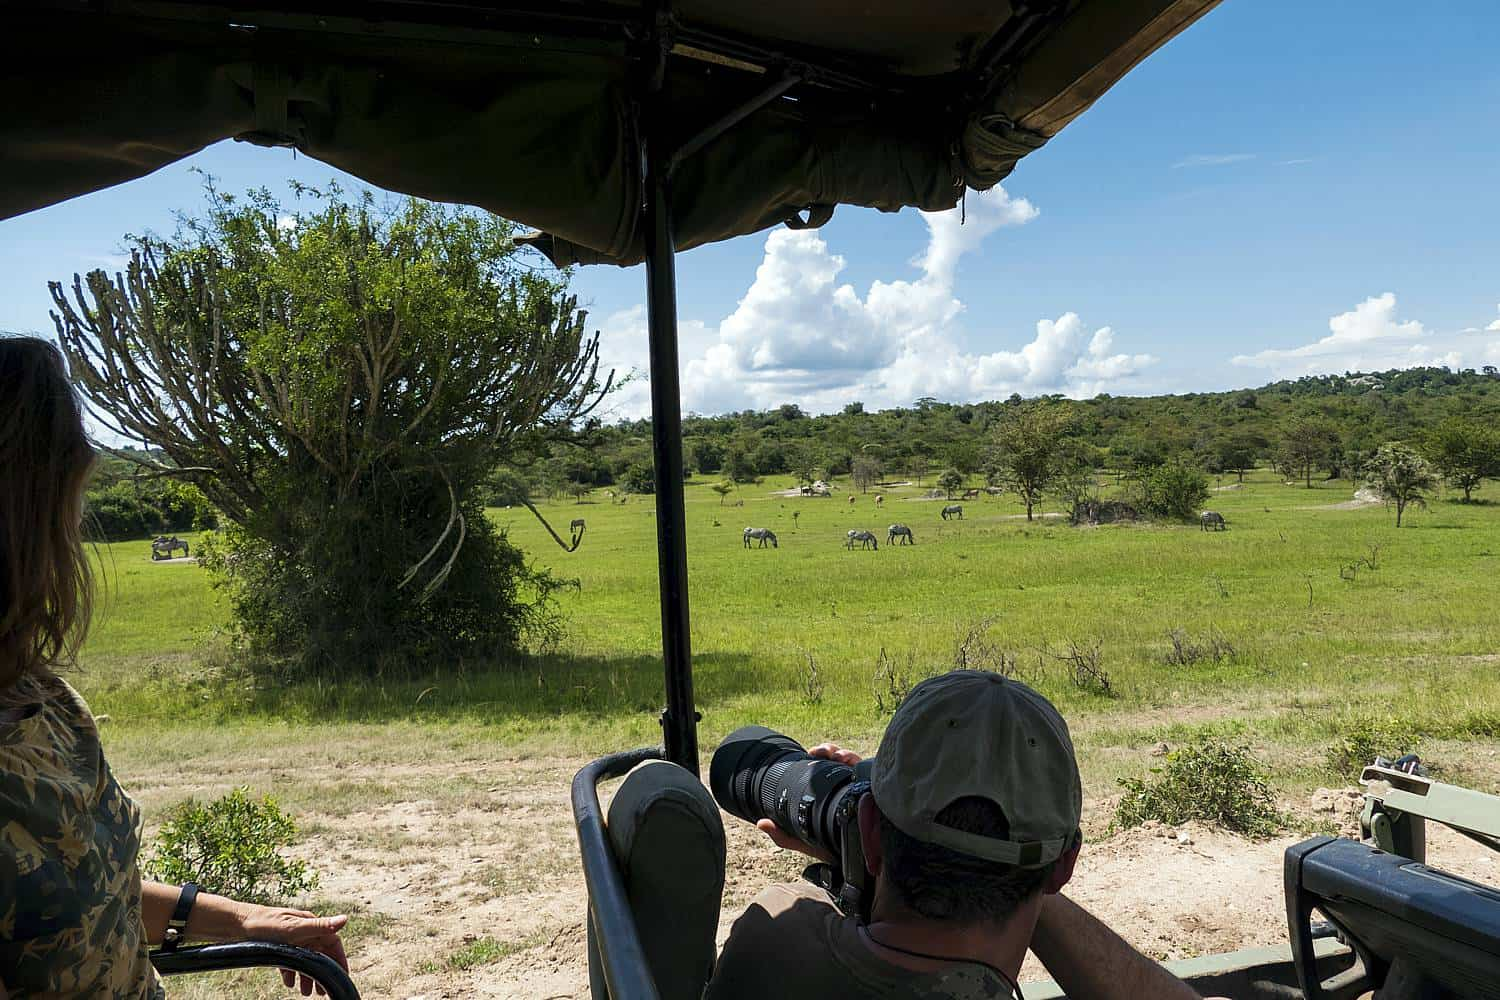 Game Drives To View The Diverse Wildlife Of Lake Mburo